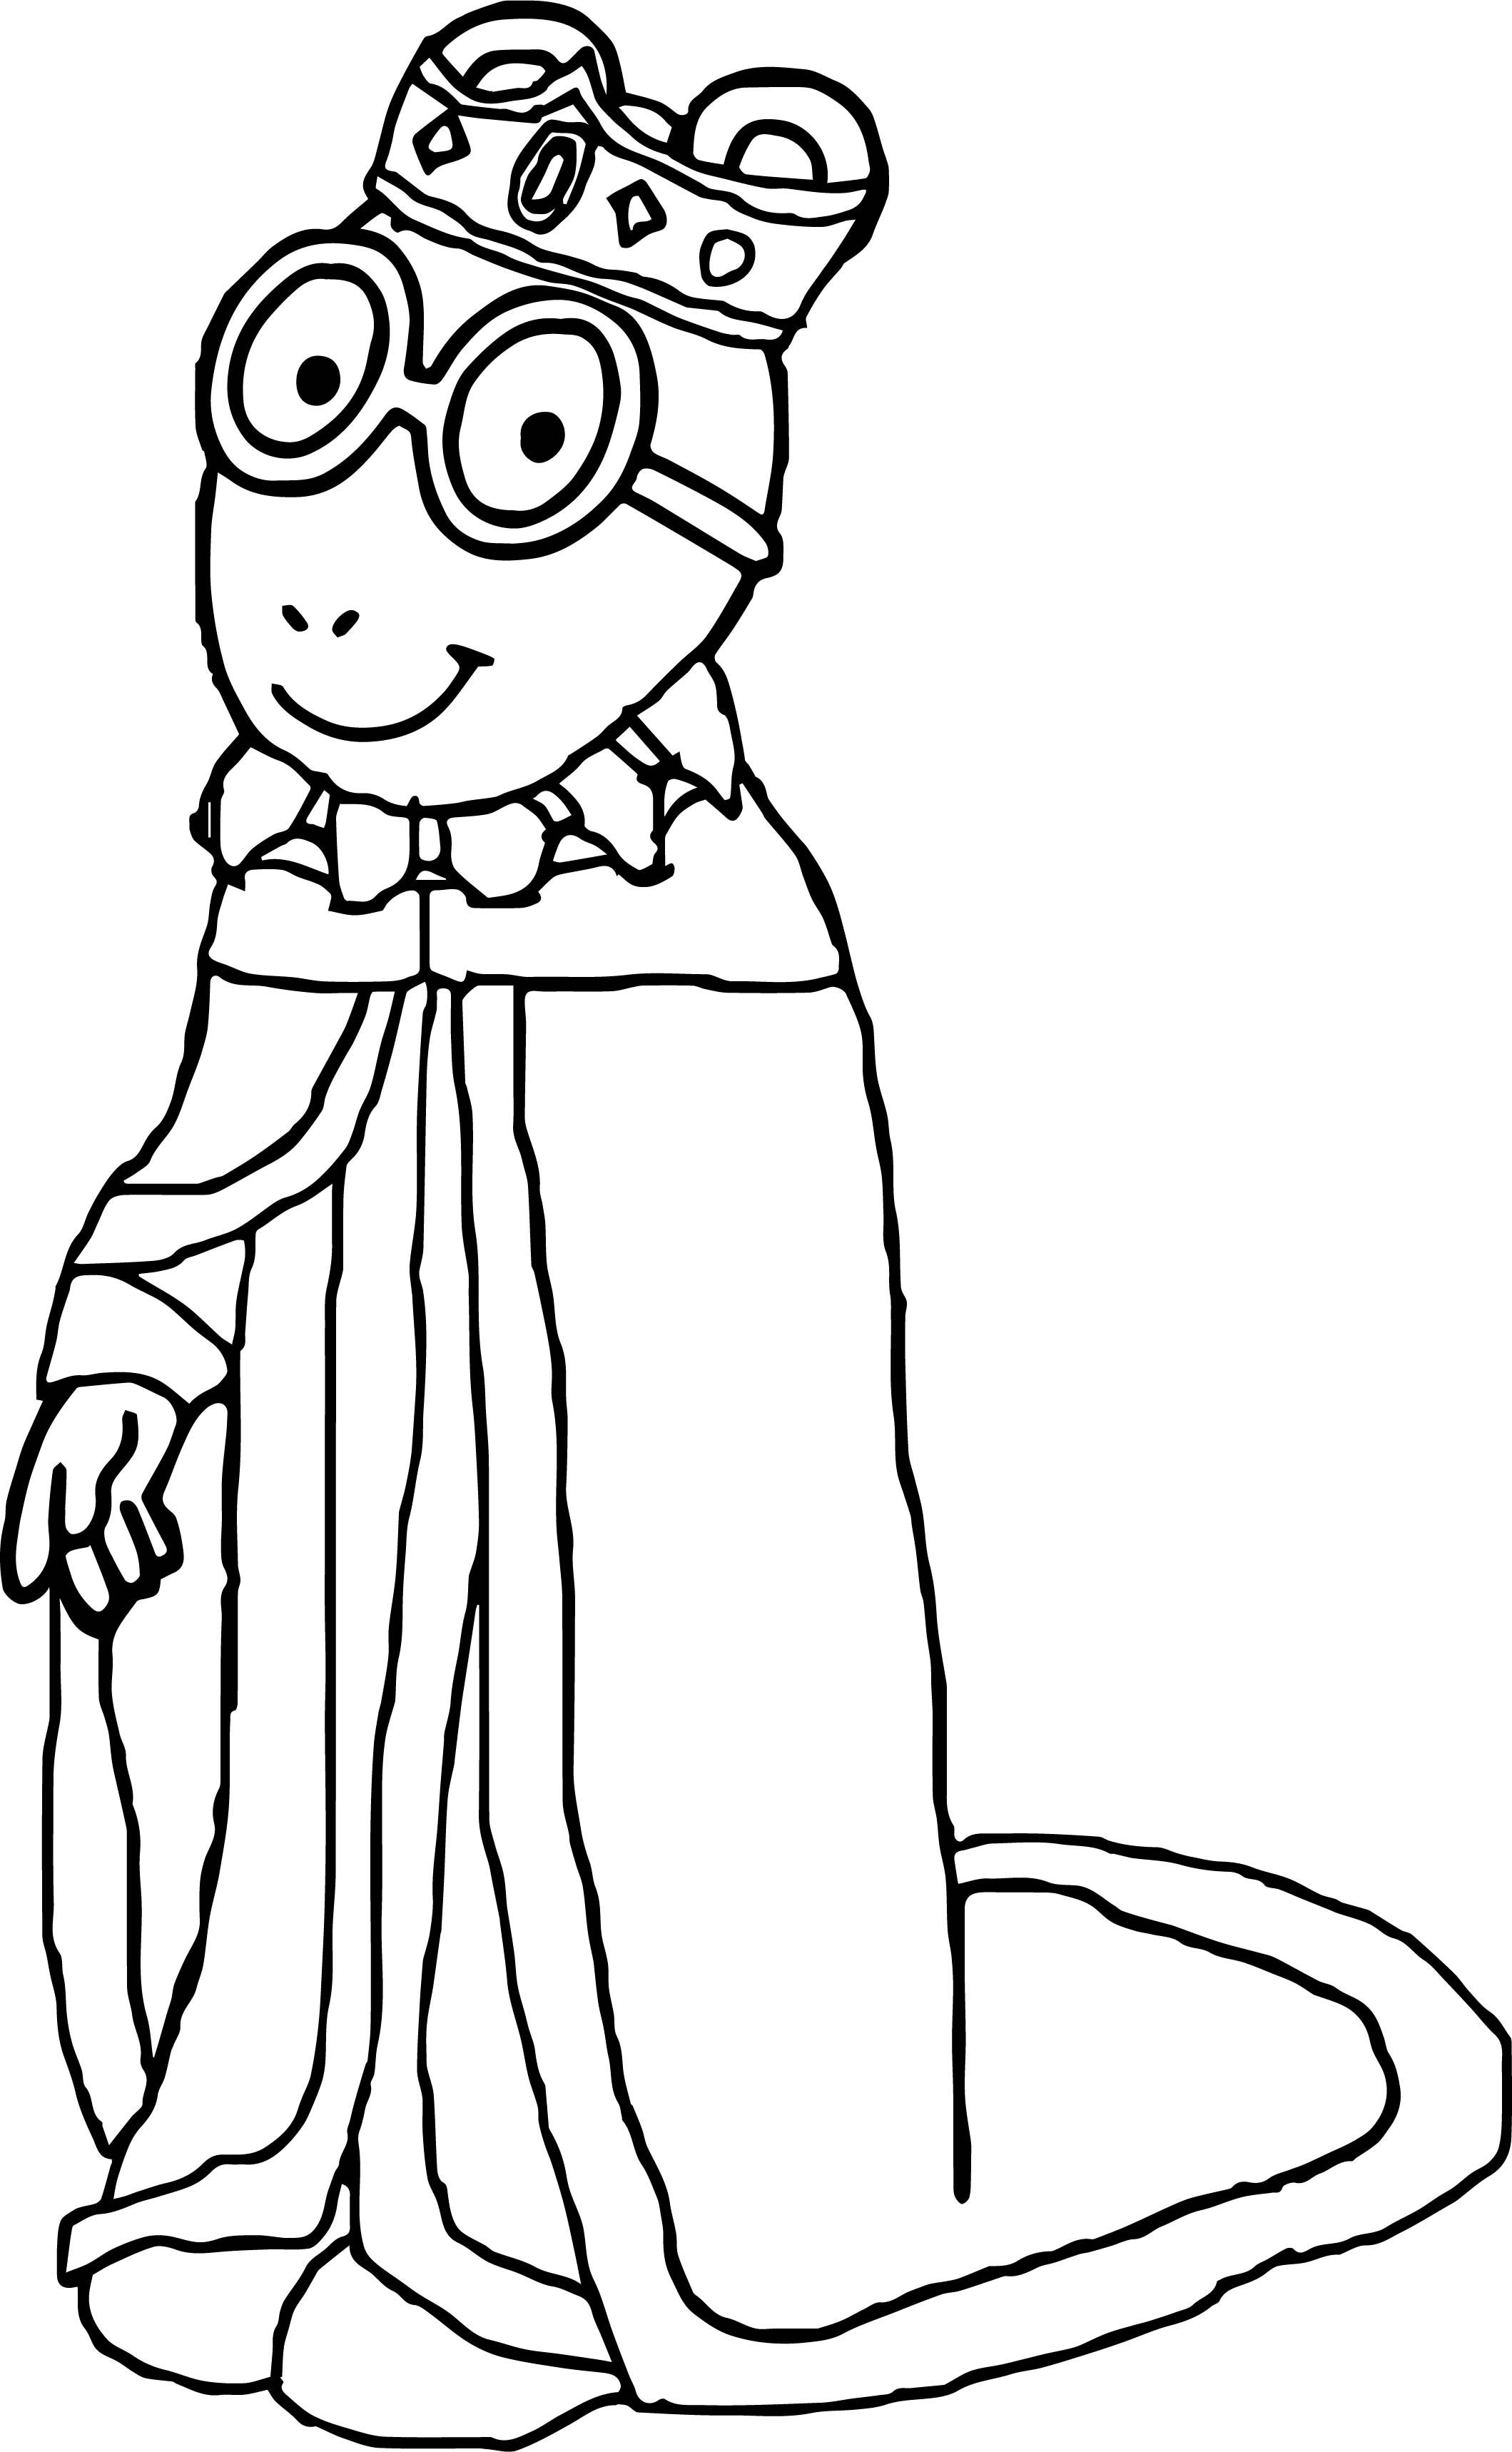 Coloring Pages King Arthur